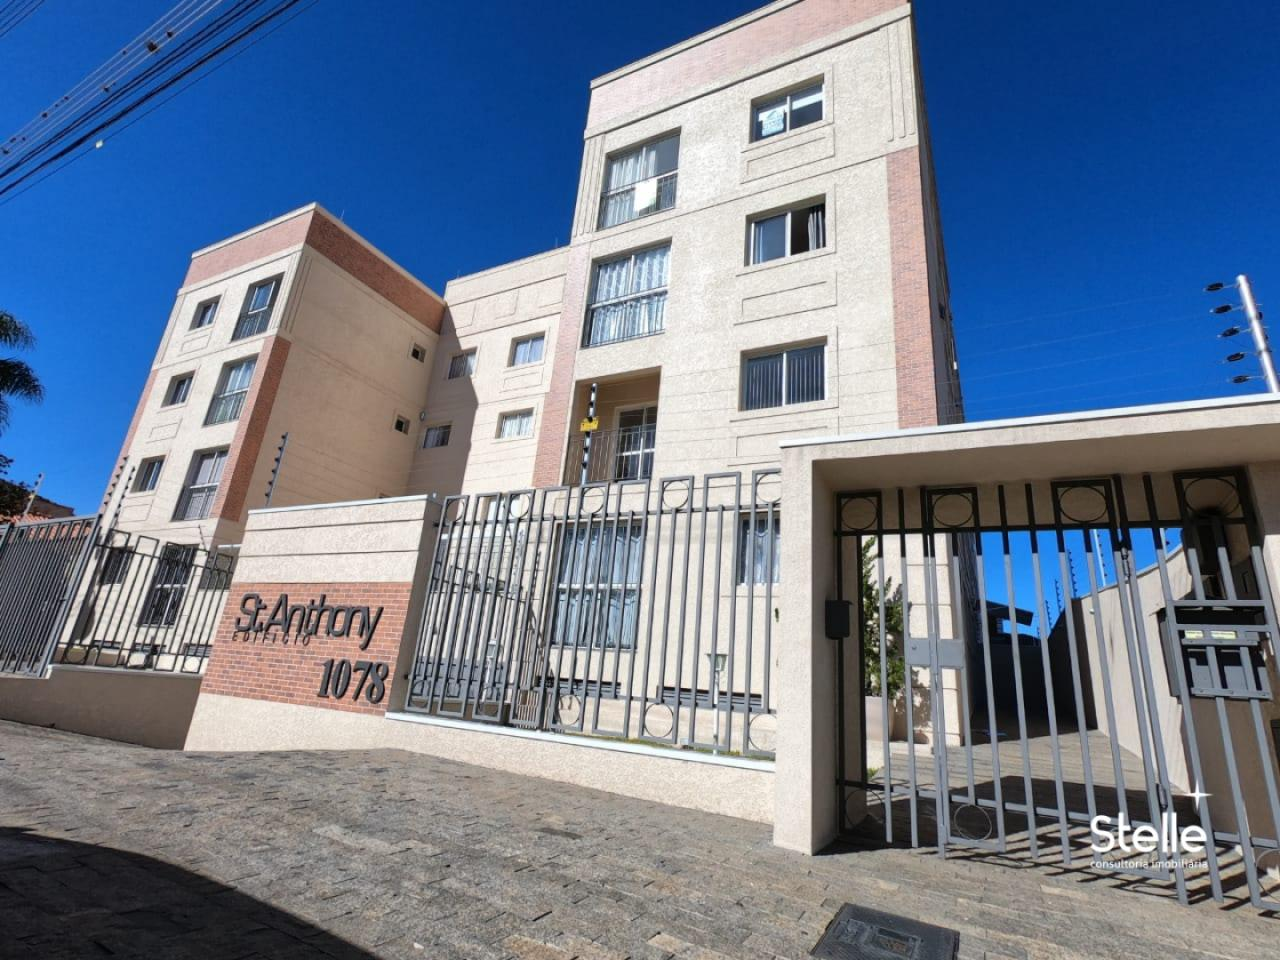 <strong>Edifício St. Anthony</strong>